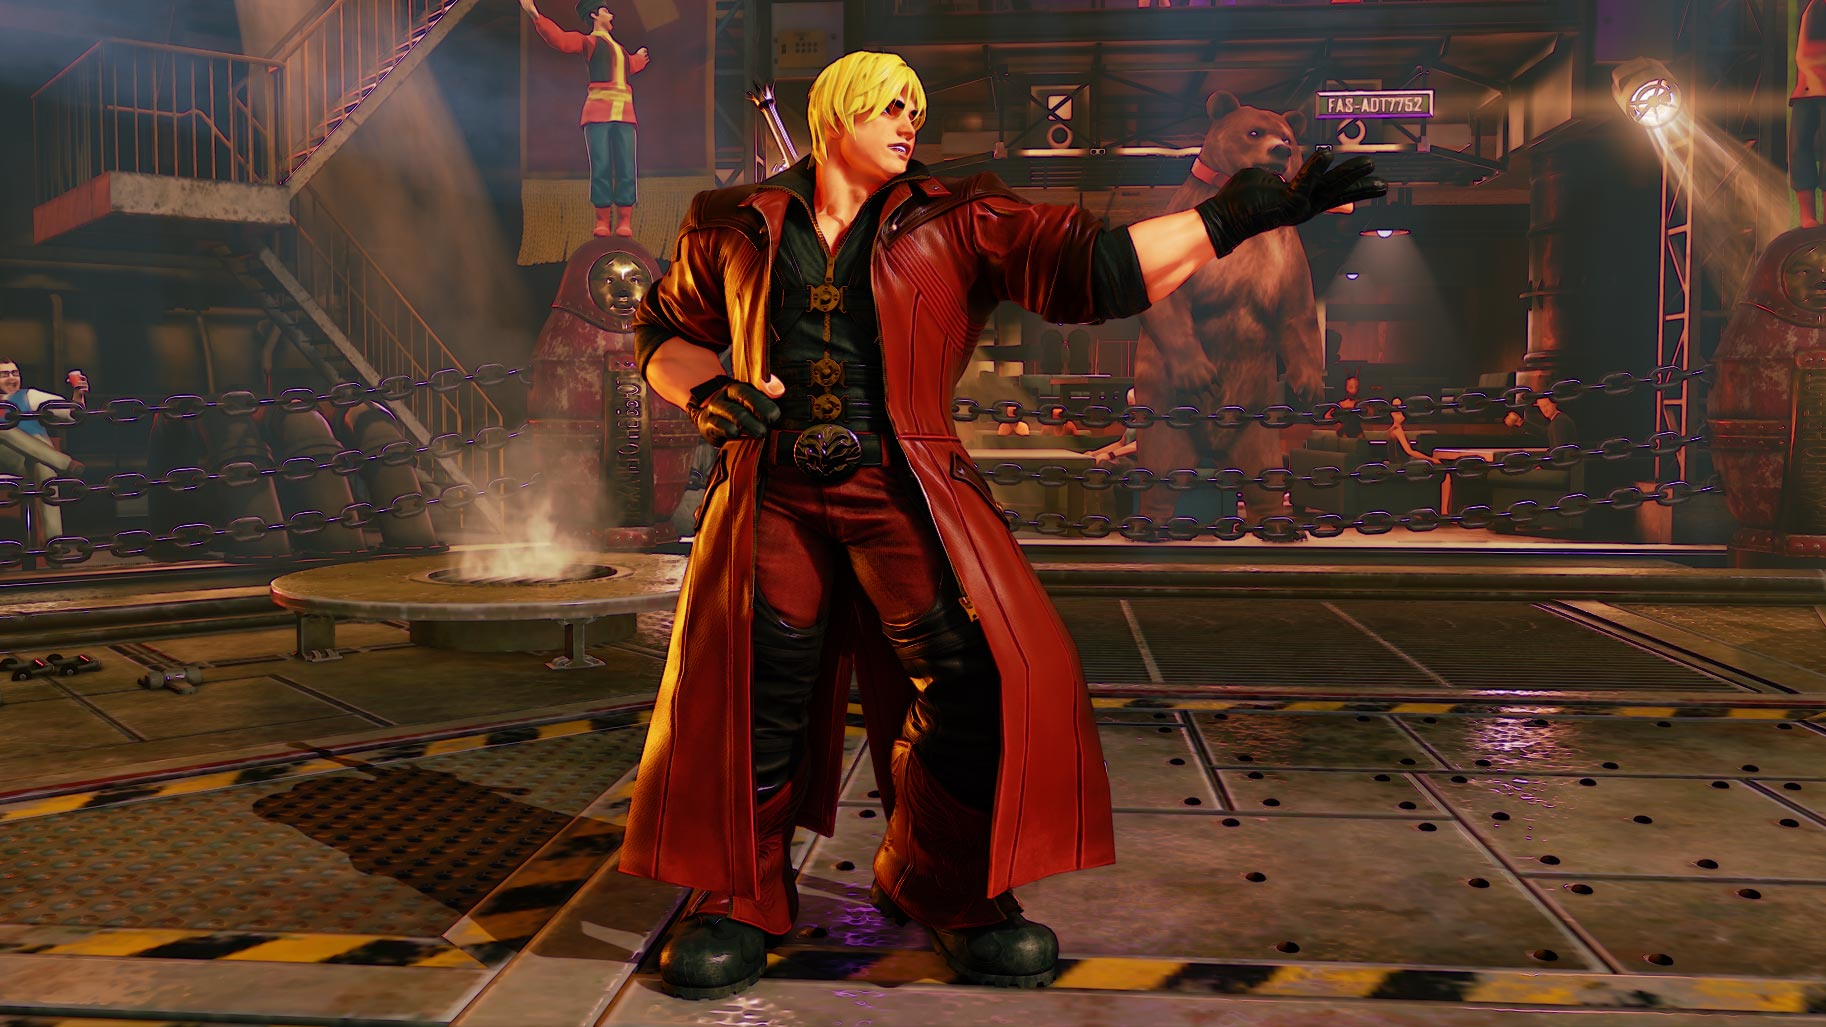 Devil May Cry, Air Man costumes, Survival mode changes in Street Fighter 5 2 out of 14 image gallery